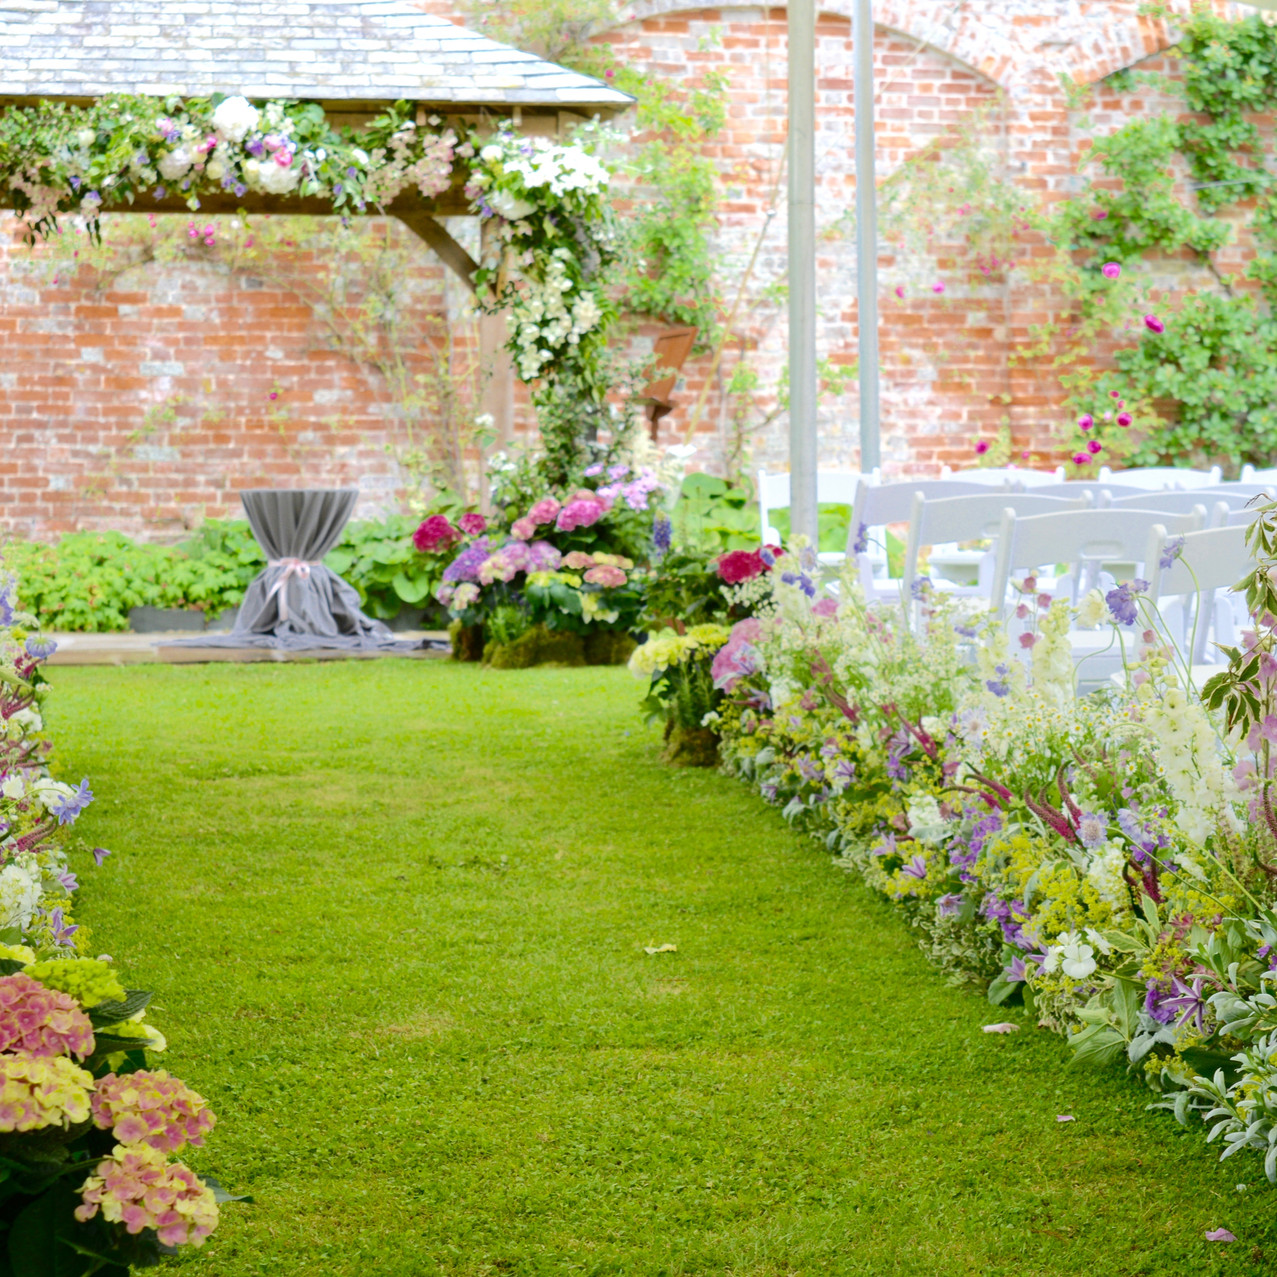 Entrance to the ceremony aisle at Kingston House Estate. A living aisle, or herbacious border was created for the happy couple to walk down towards the ceremony pegola.